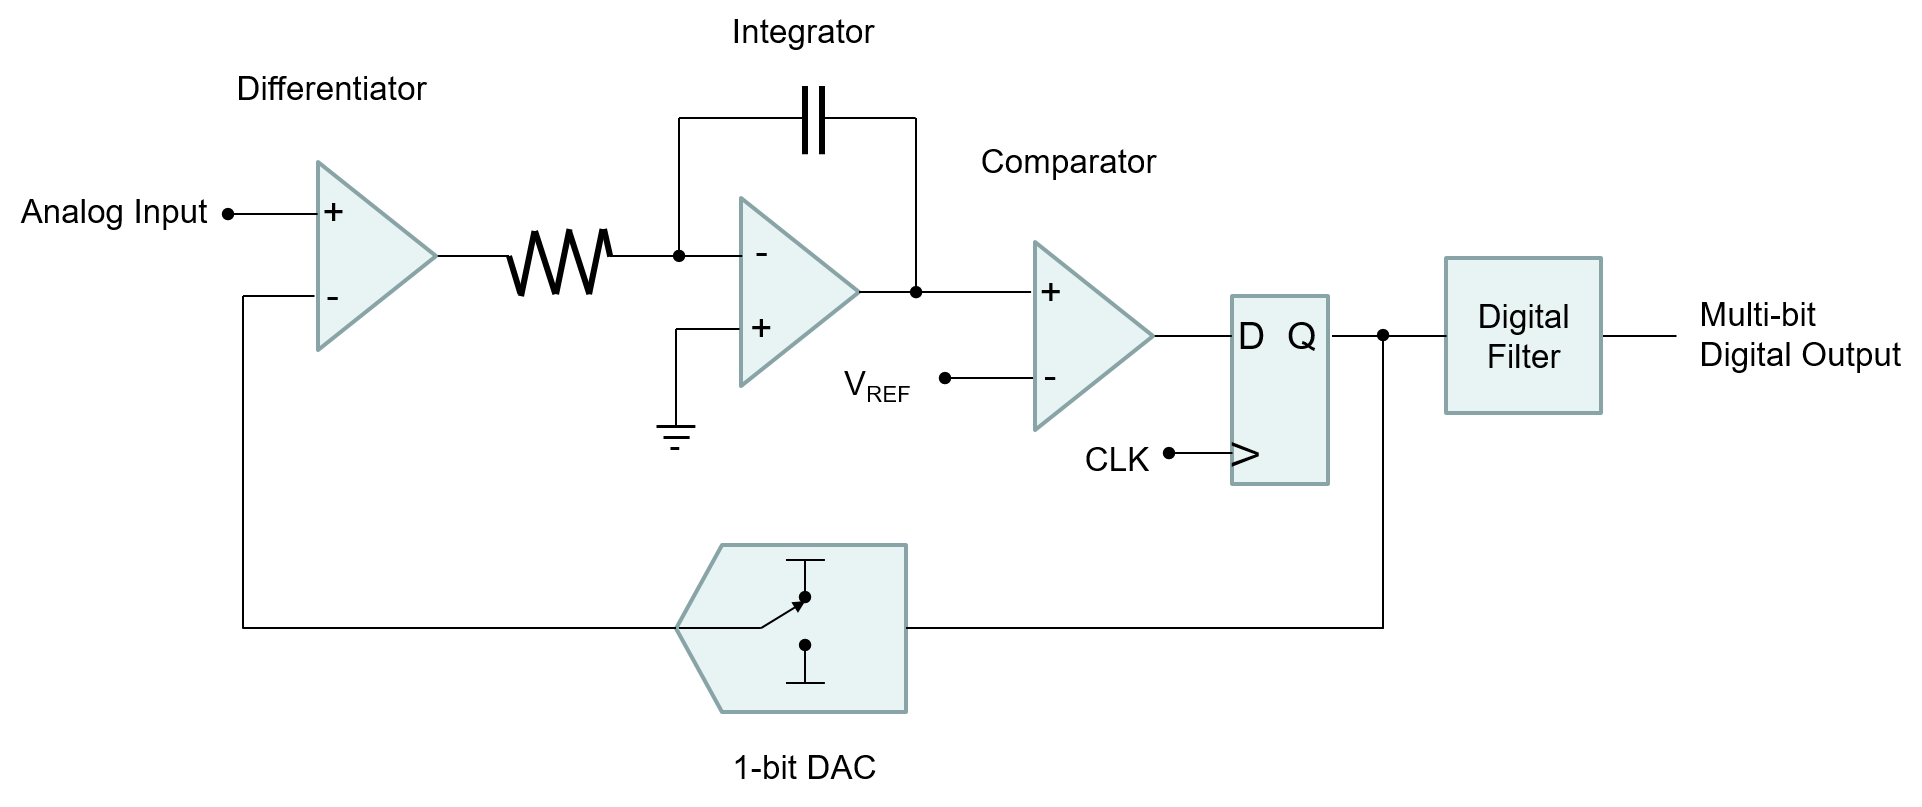 sdadc-block-diagram-modulator.png